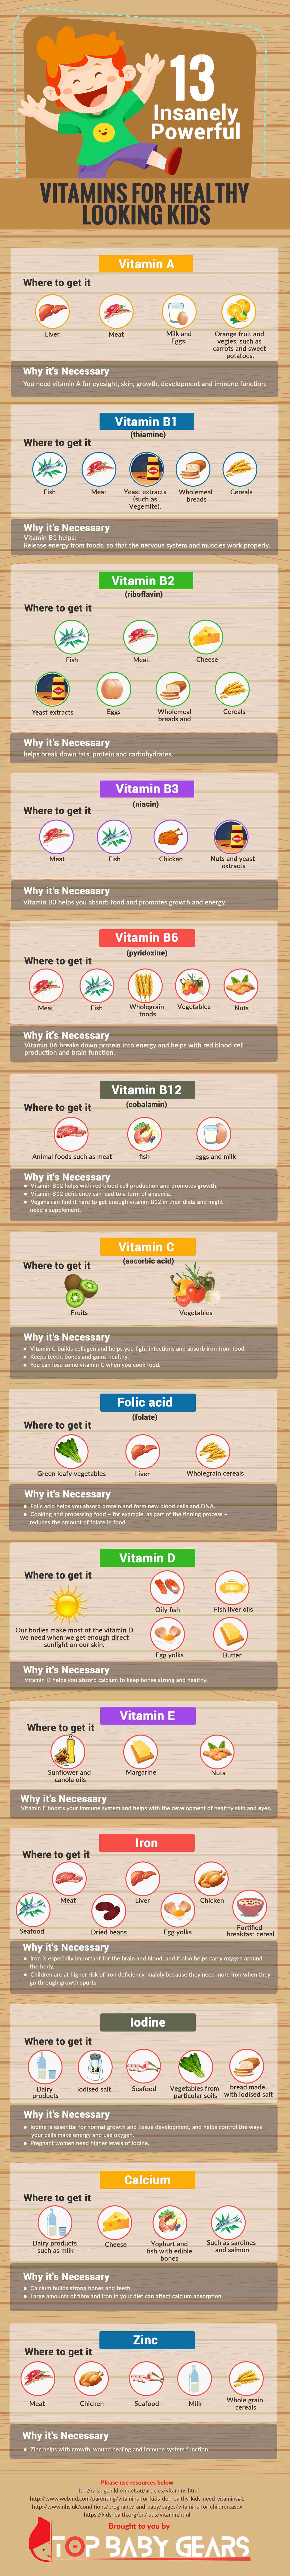 13 Insanely Powerful Vitamins for Healthy Looking Kids